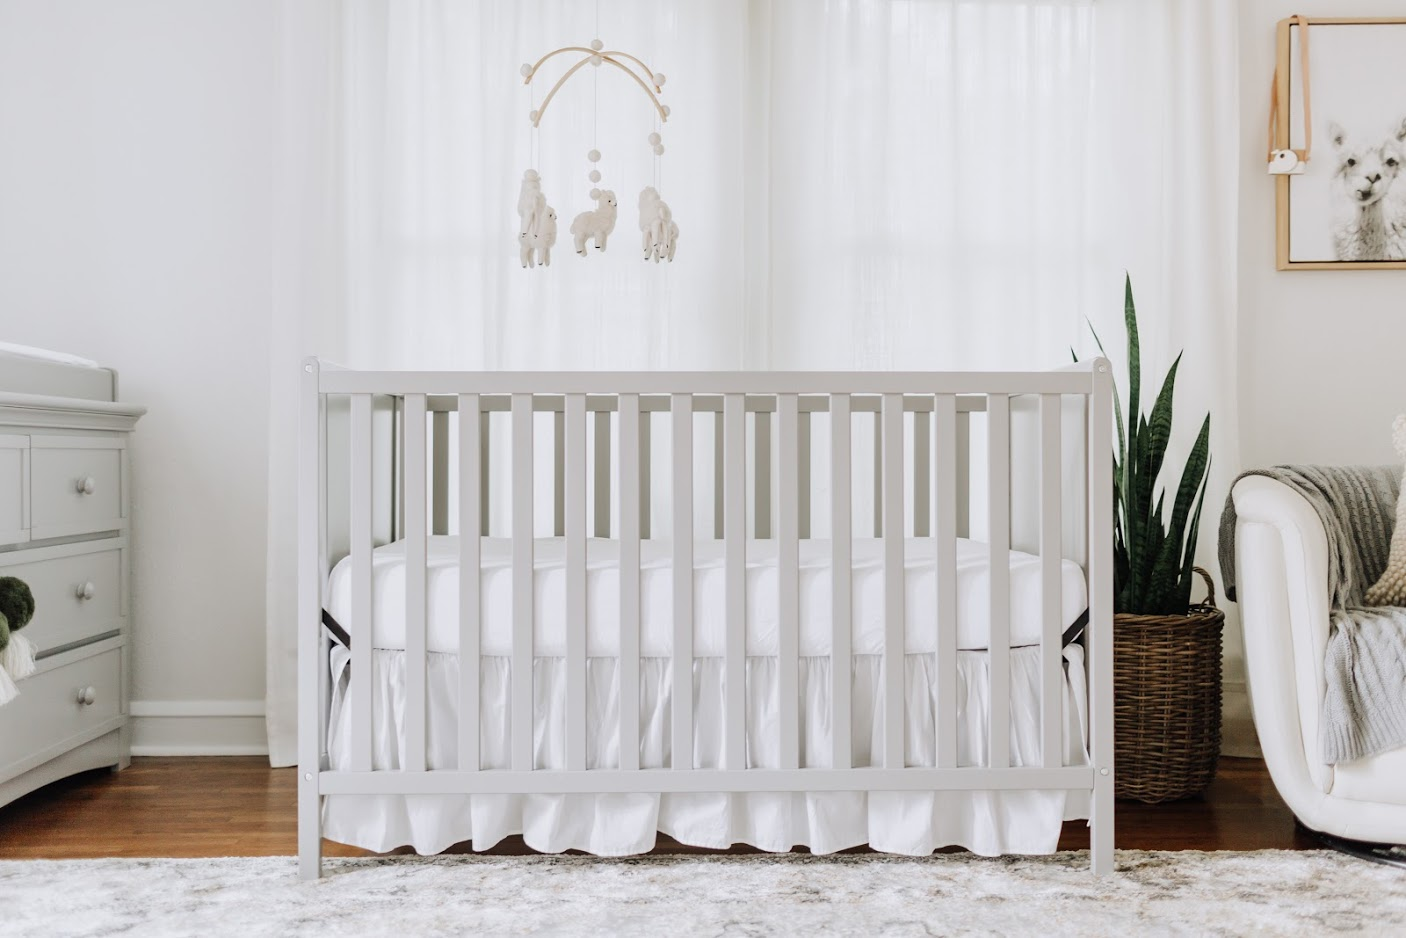 A neutral crib creates a space for a baby's room.